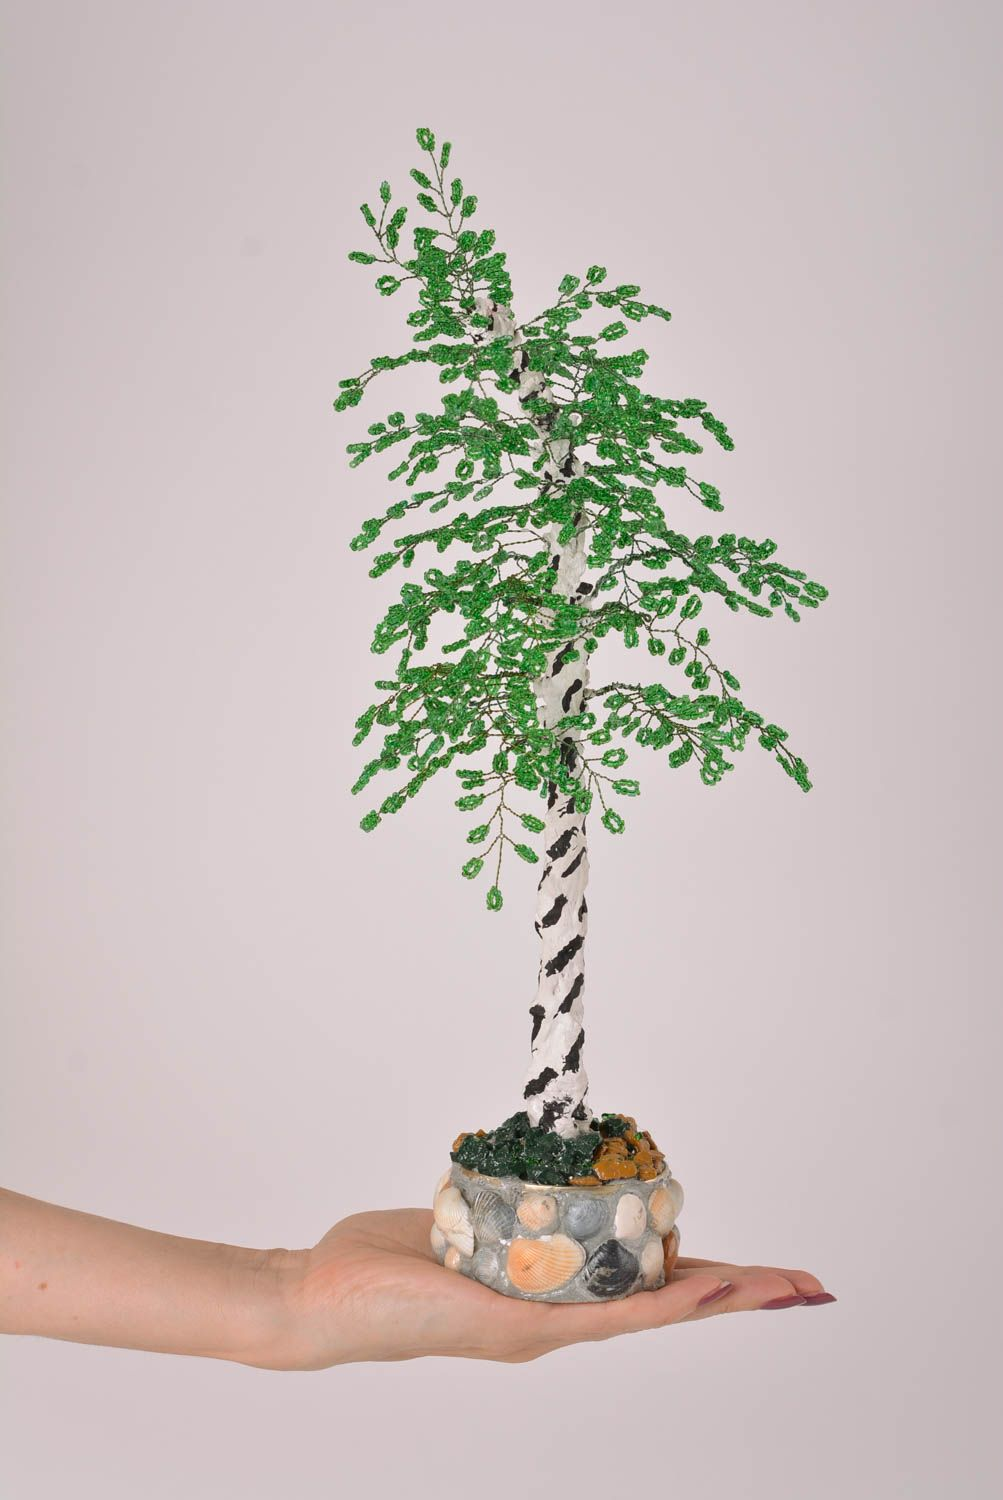 Homemade home decor artificial tree bead weaving topiary tree for decorative use photo 3